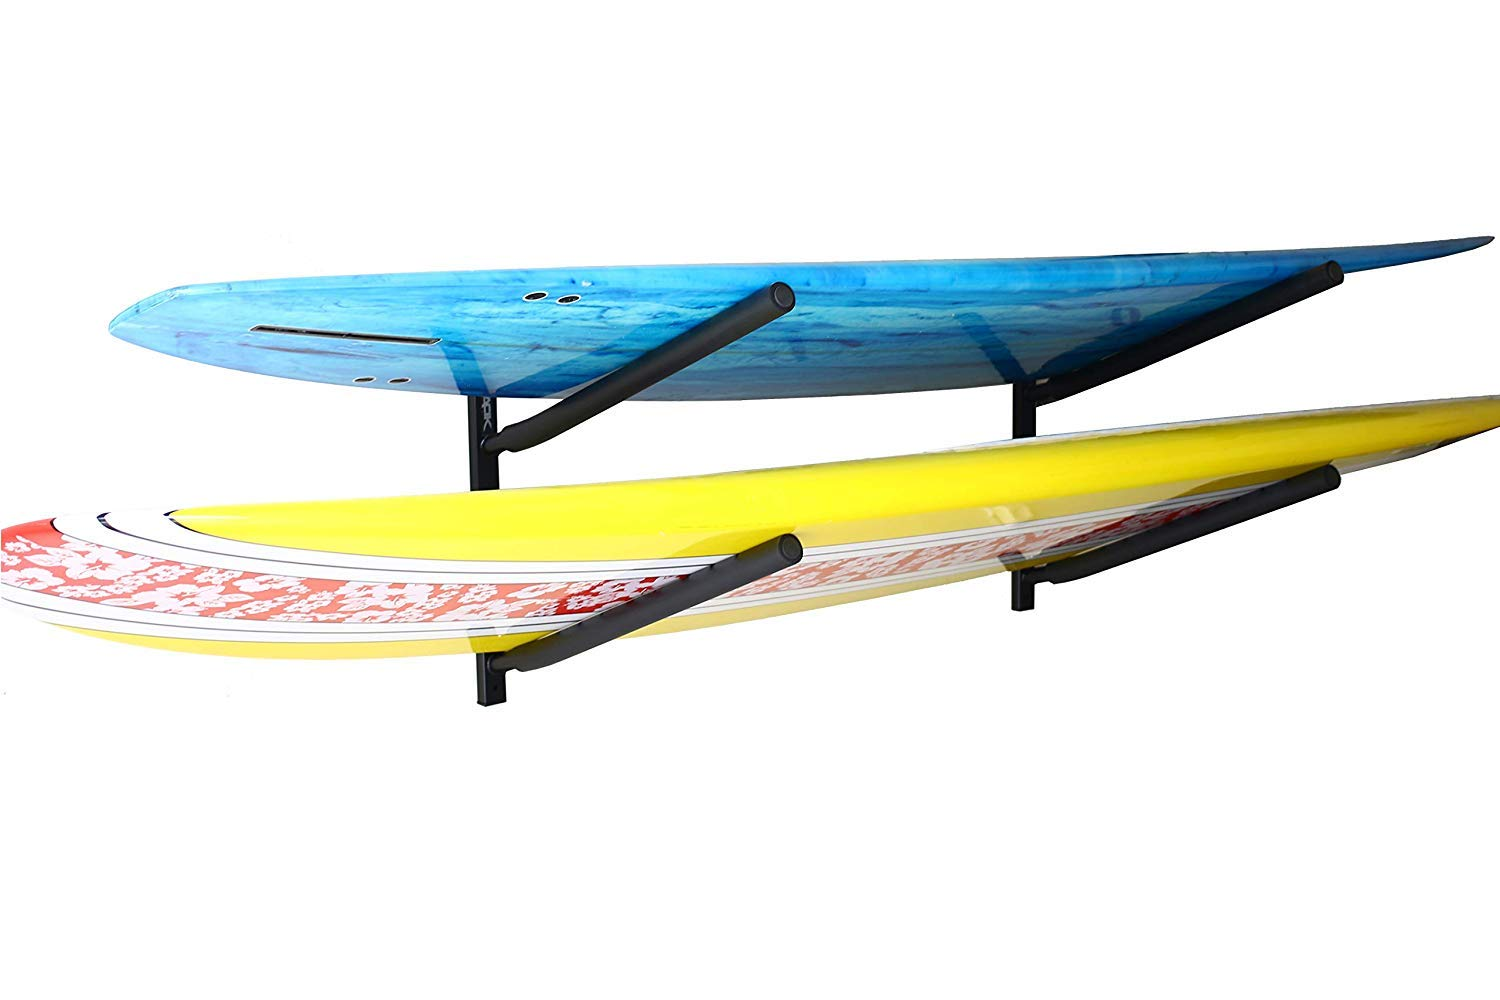 SPAREHAND Double Wall Mount Rack with Angled Padded Arms for 2 Surfboards or SUP Paddle Boards by SPAREHAND